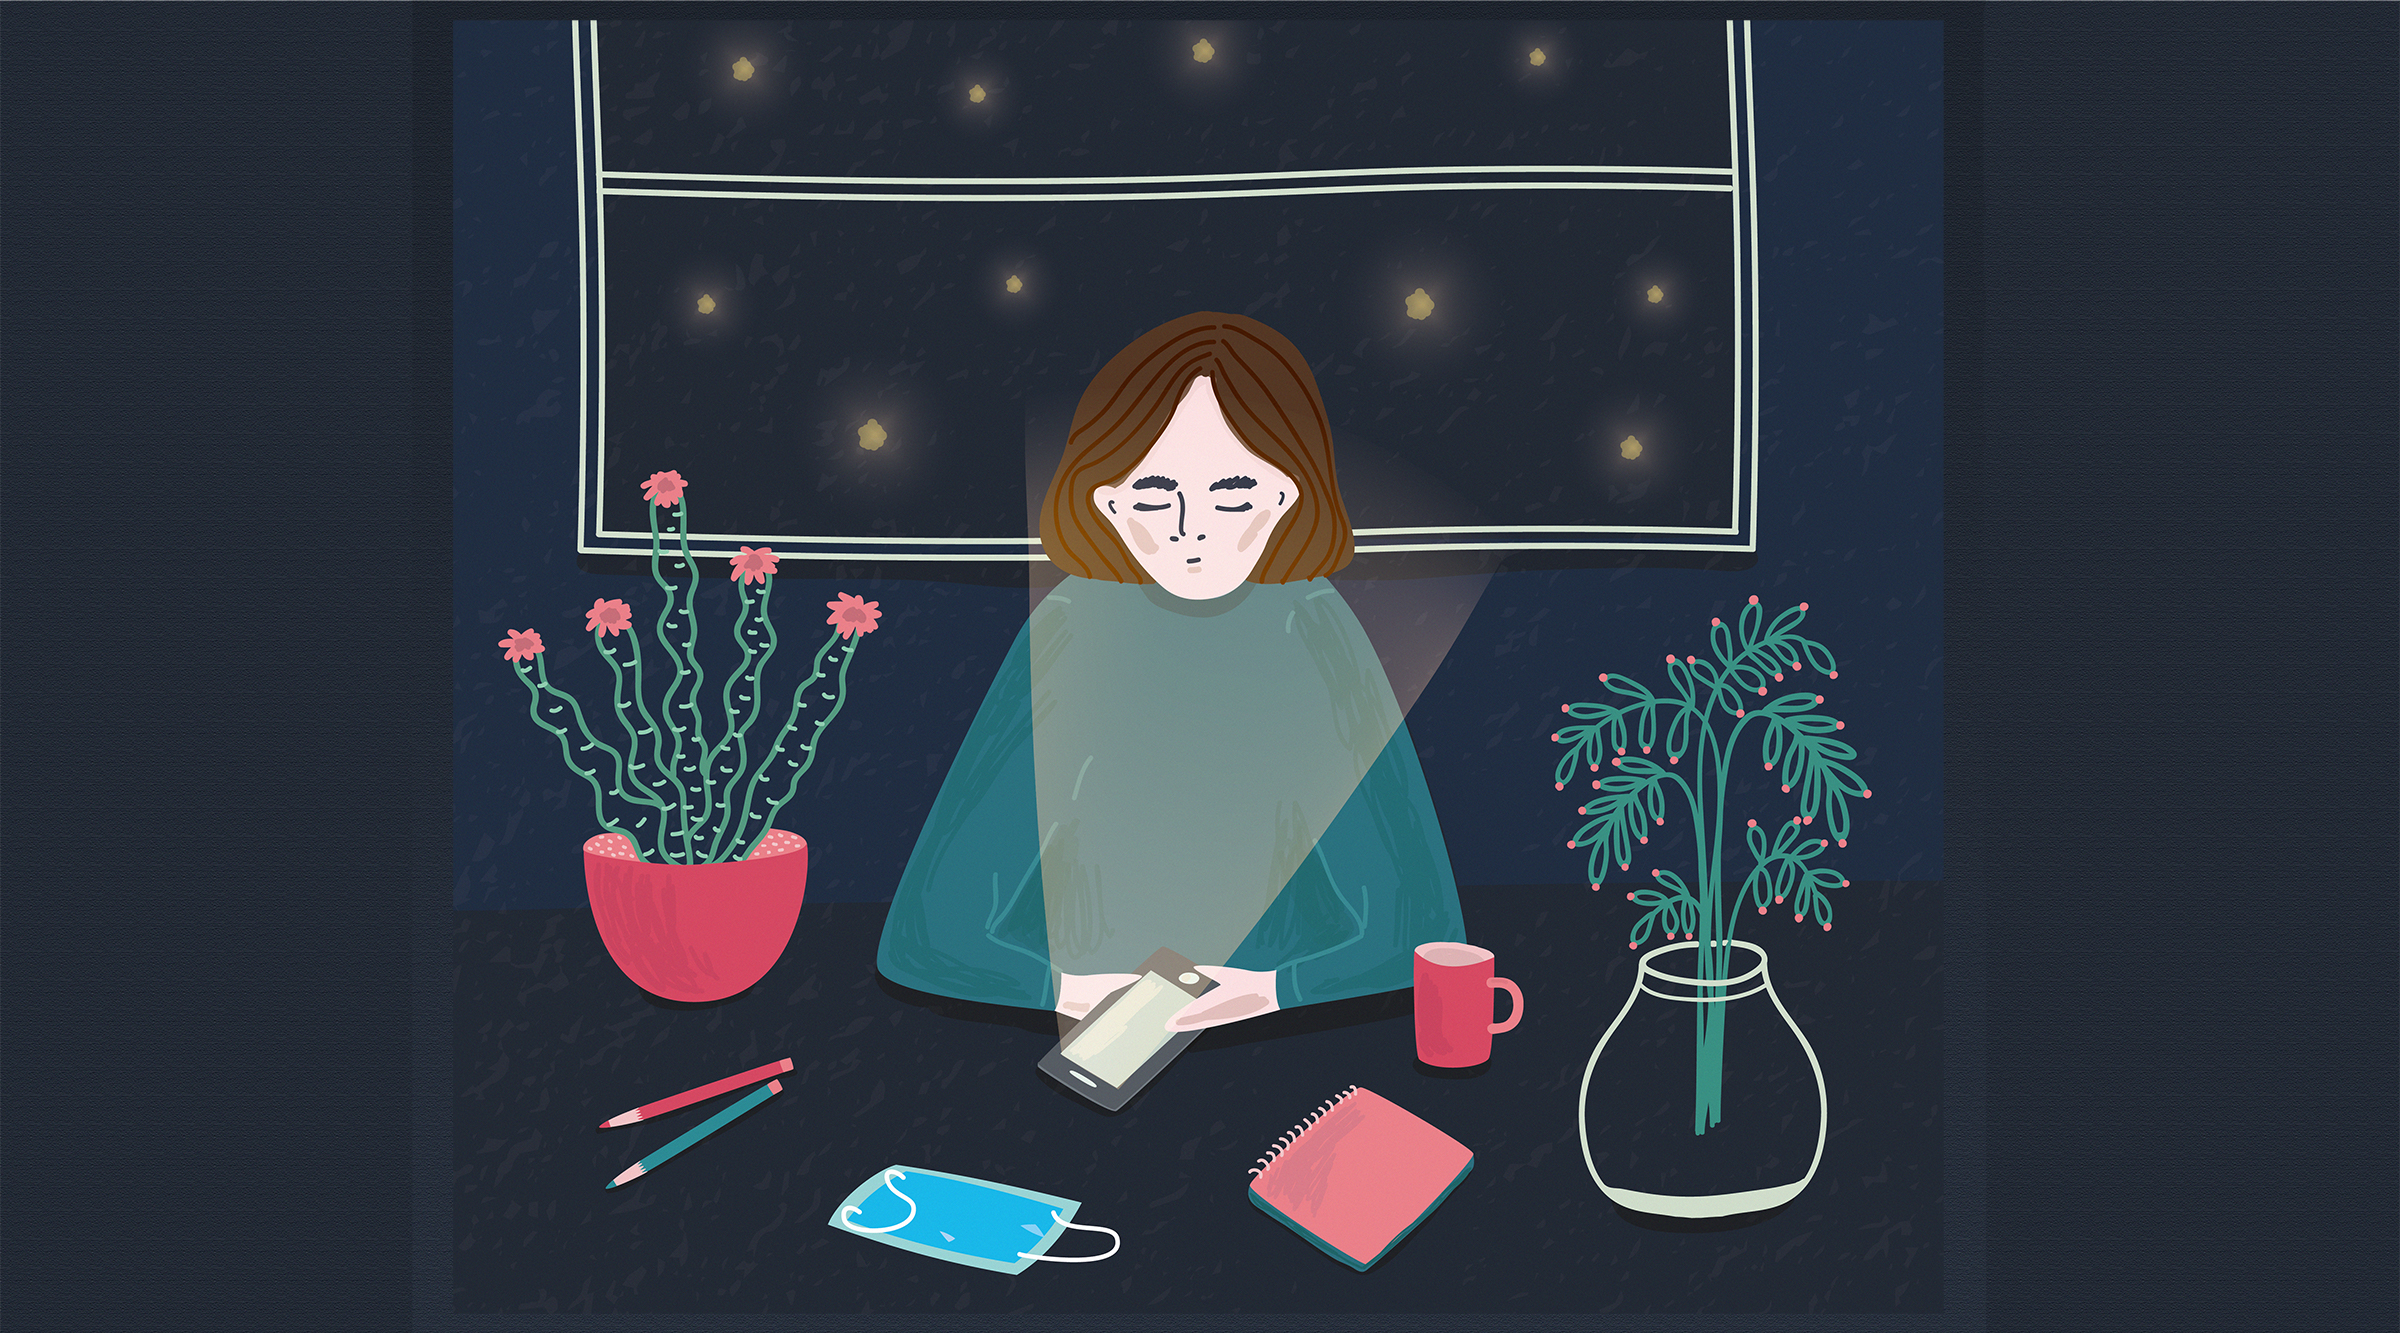 Illustration of woman sitting at a desk and using her phone at night with a facemask in front of her. For Speak Up COVID article